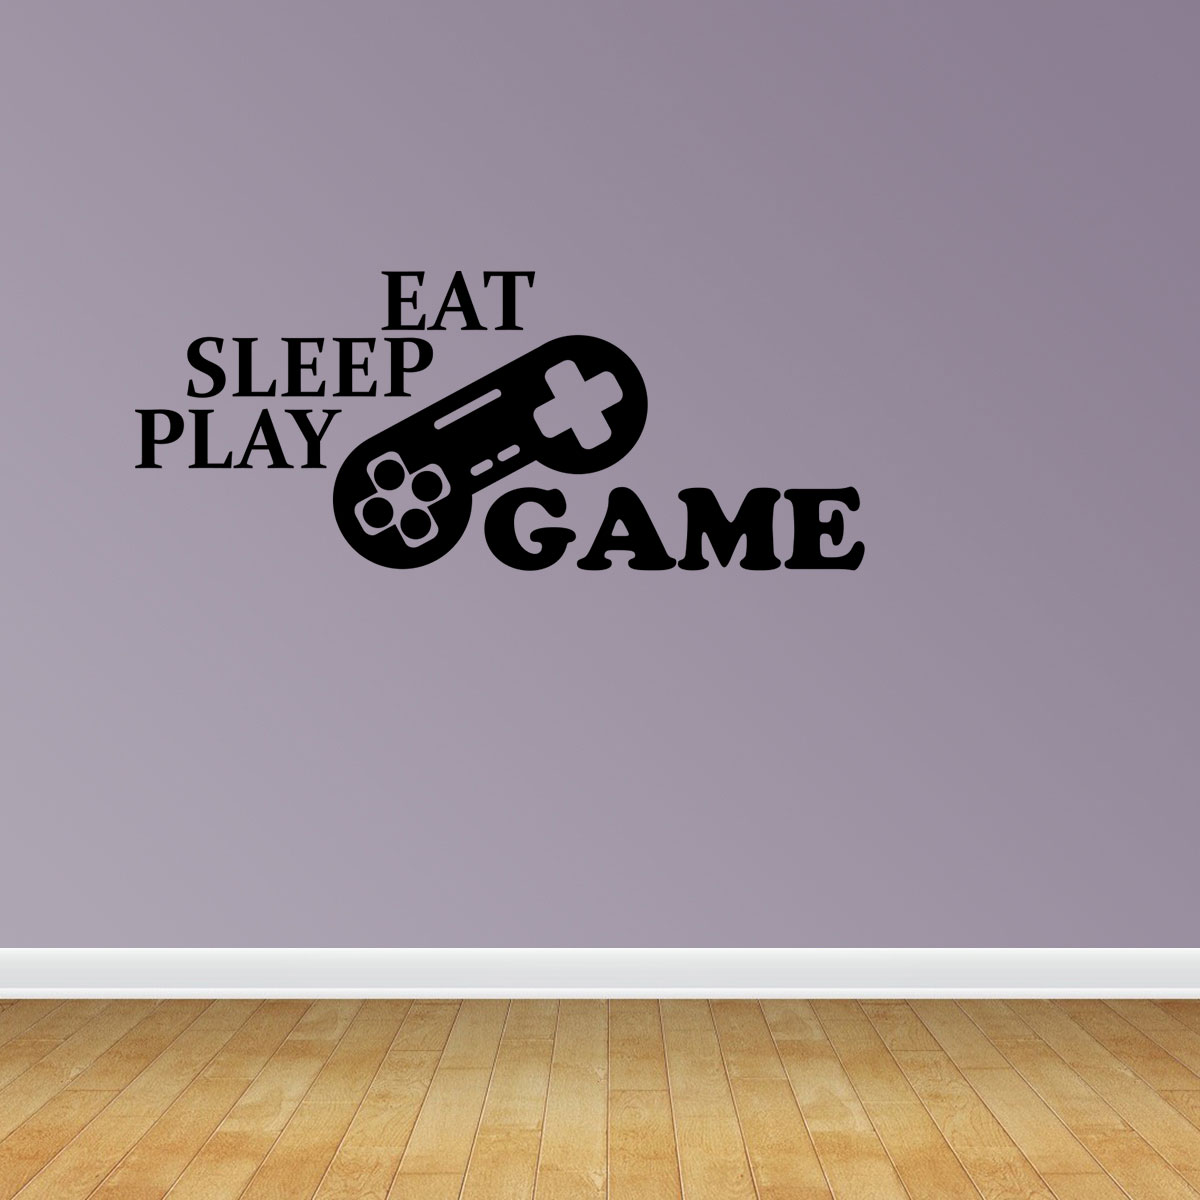 Eat Sleep Play Game Vinyl Wall Decals Vinyl Decals Video Gamer Decal Game Room Decal PC168